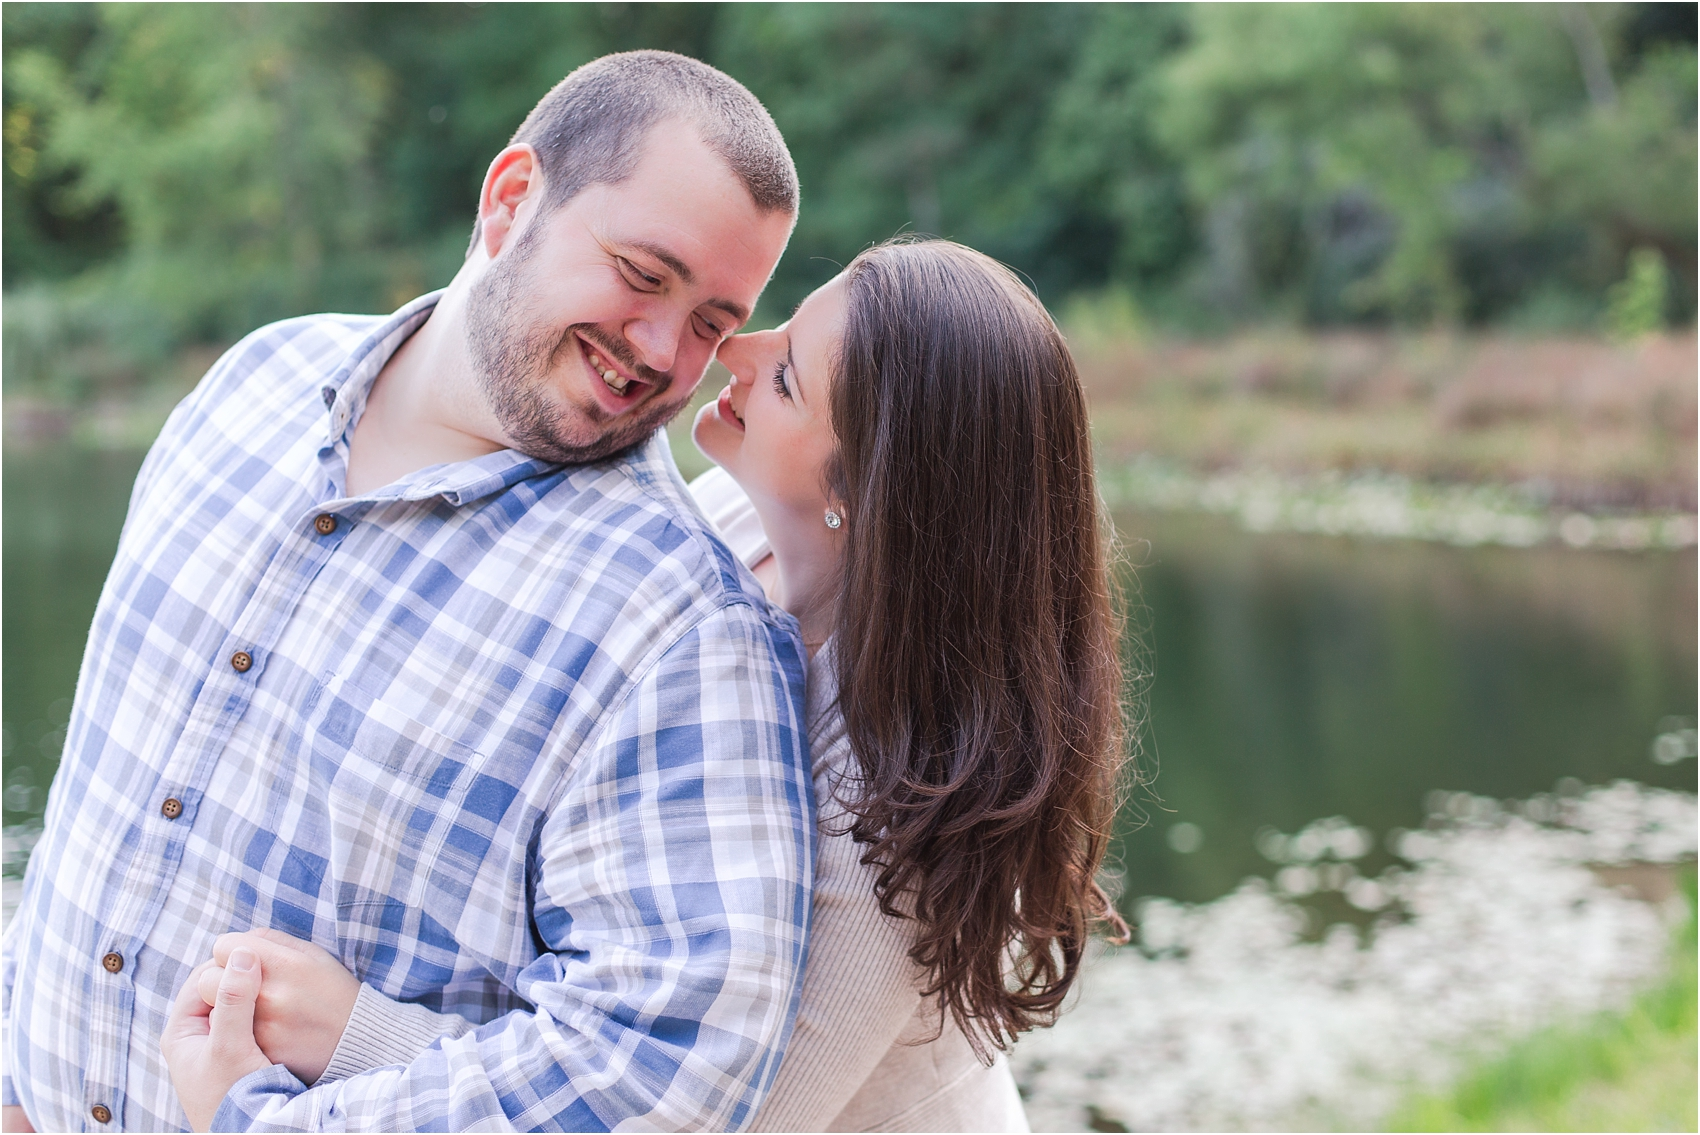 candid-romantic-summer-engagement-photos-at-hidden-lake-gardens-and-black-fire-winery-in-tipton-mi-by-courtney-carolyn-photography_0038.jpg